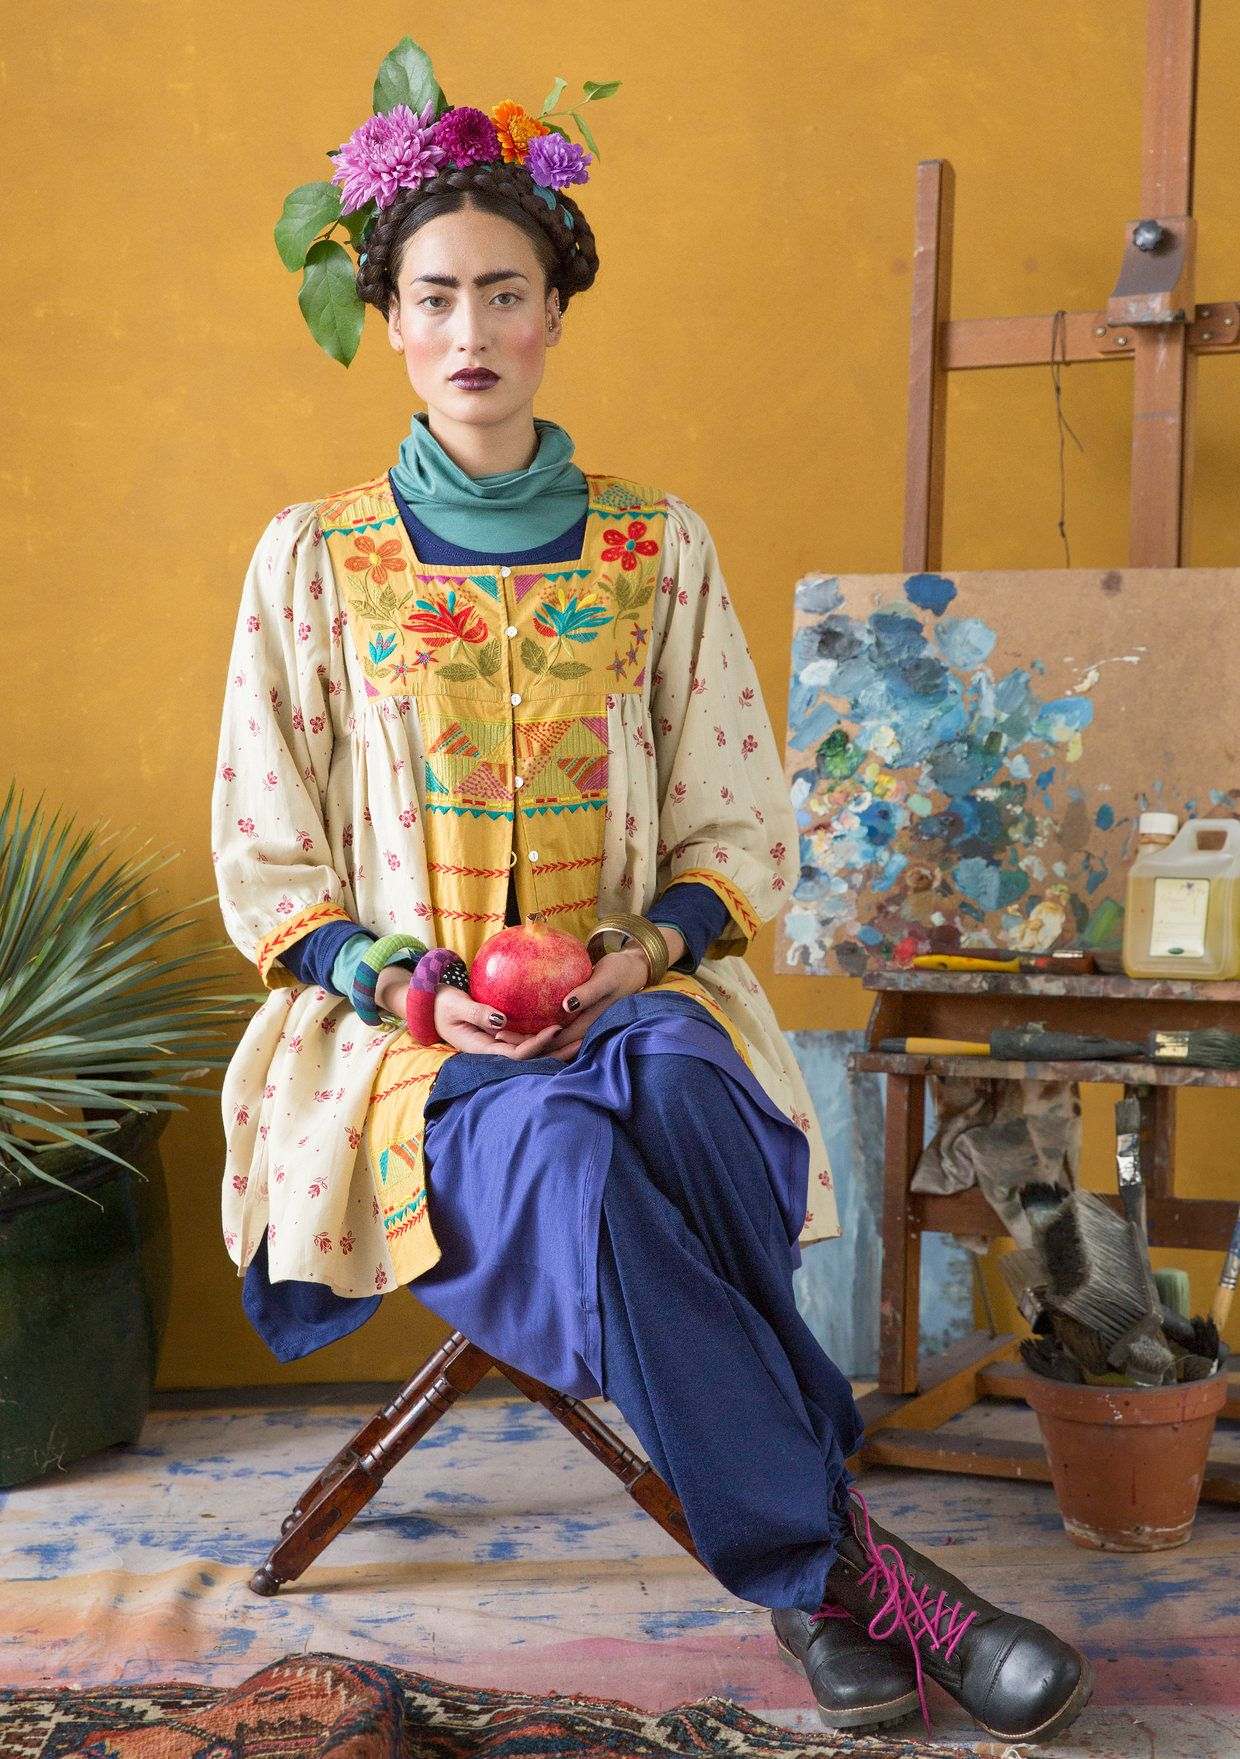 Inspiration Frida Kahlo – GUDRUN SJÖDÉN – Webshop, mail order and boutiques | Colourful clothes and home textiles in natural materials.